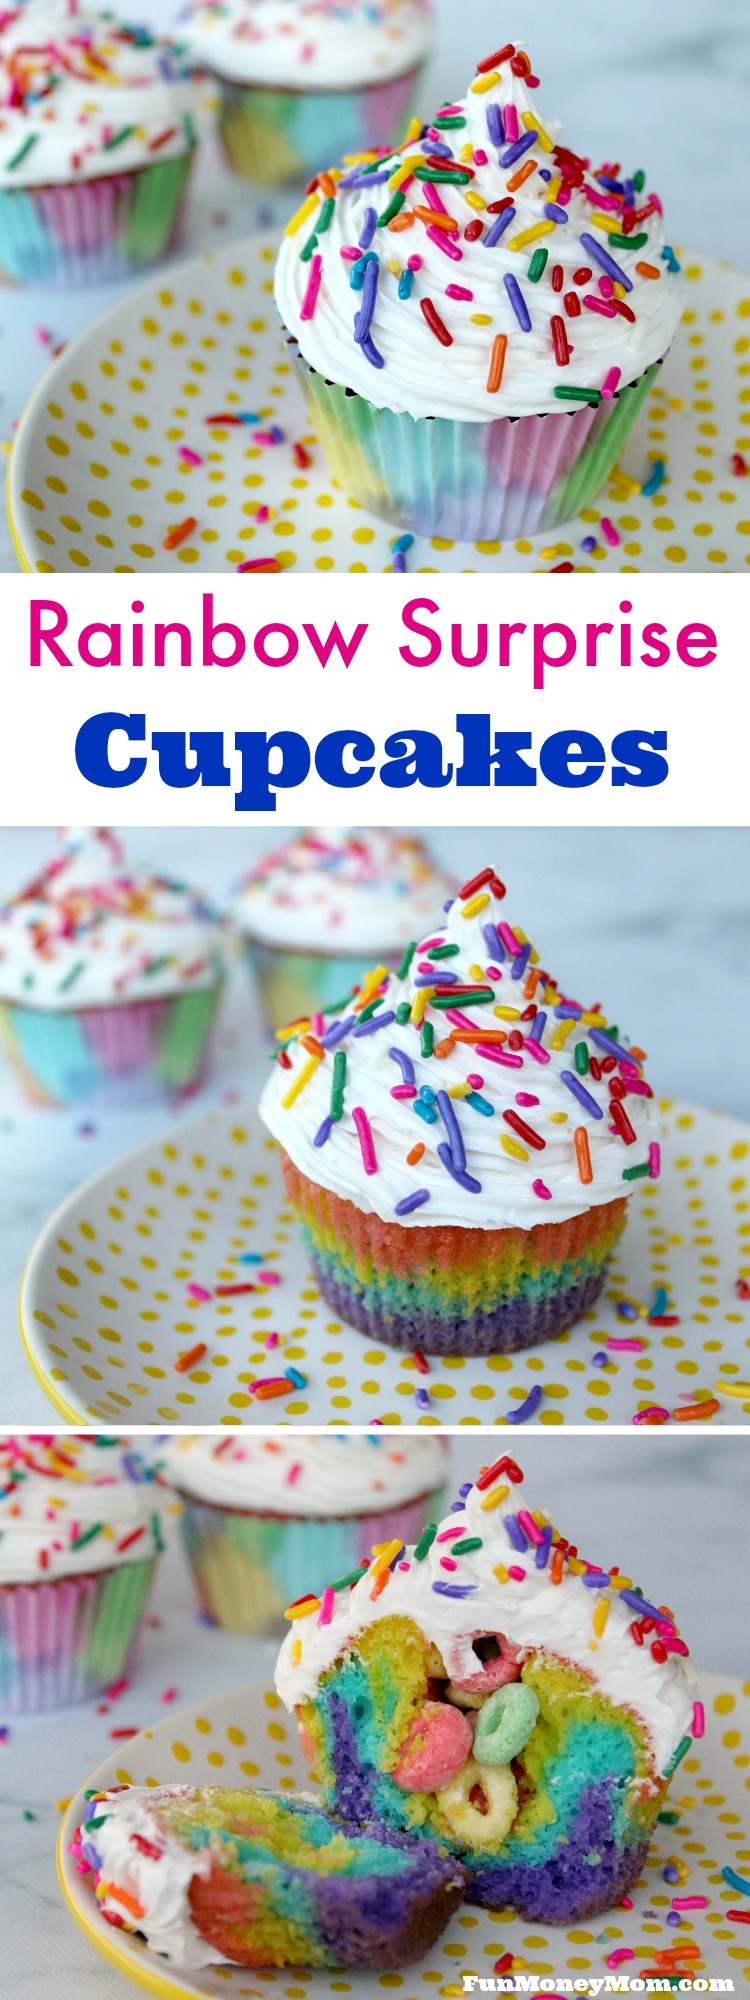 Looking for a fun cupcake treat? These Rainbow Surprise Cupcakes are great for birthdays, St. Patrick's Day or just about any other special occasion you can think of!